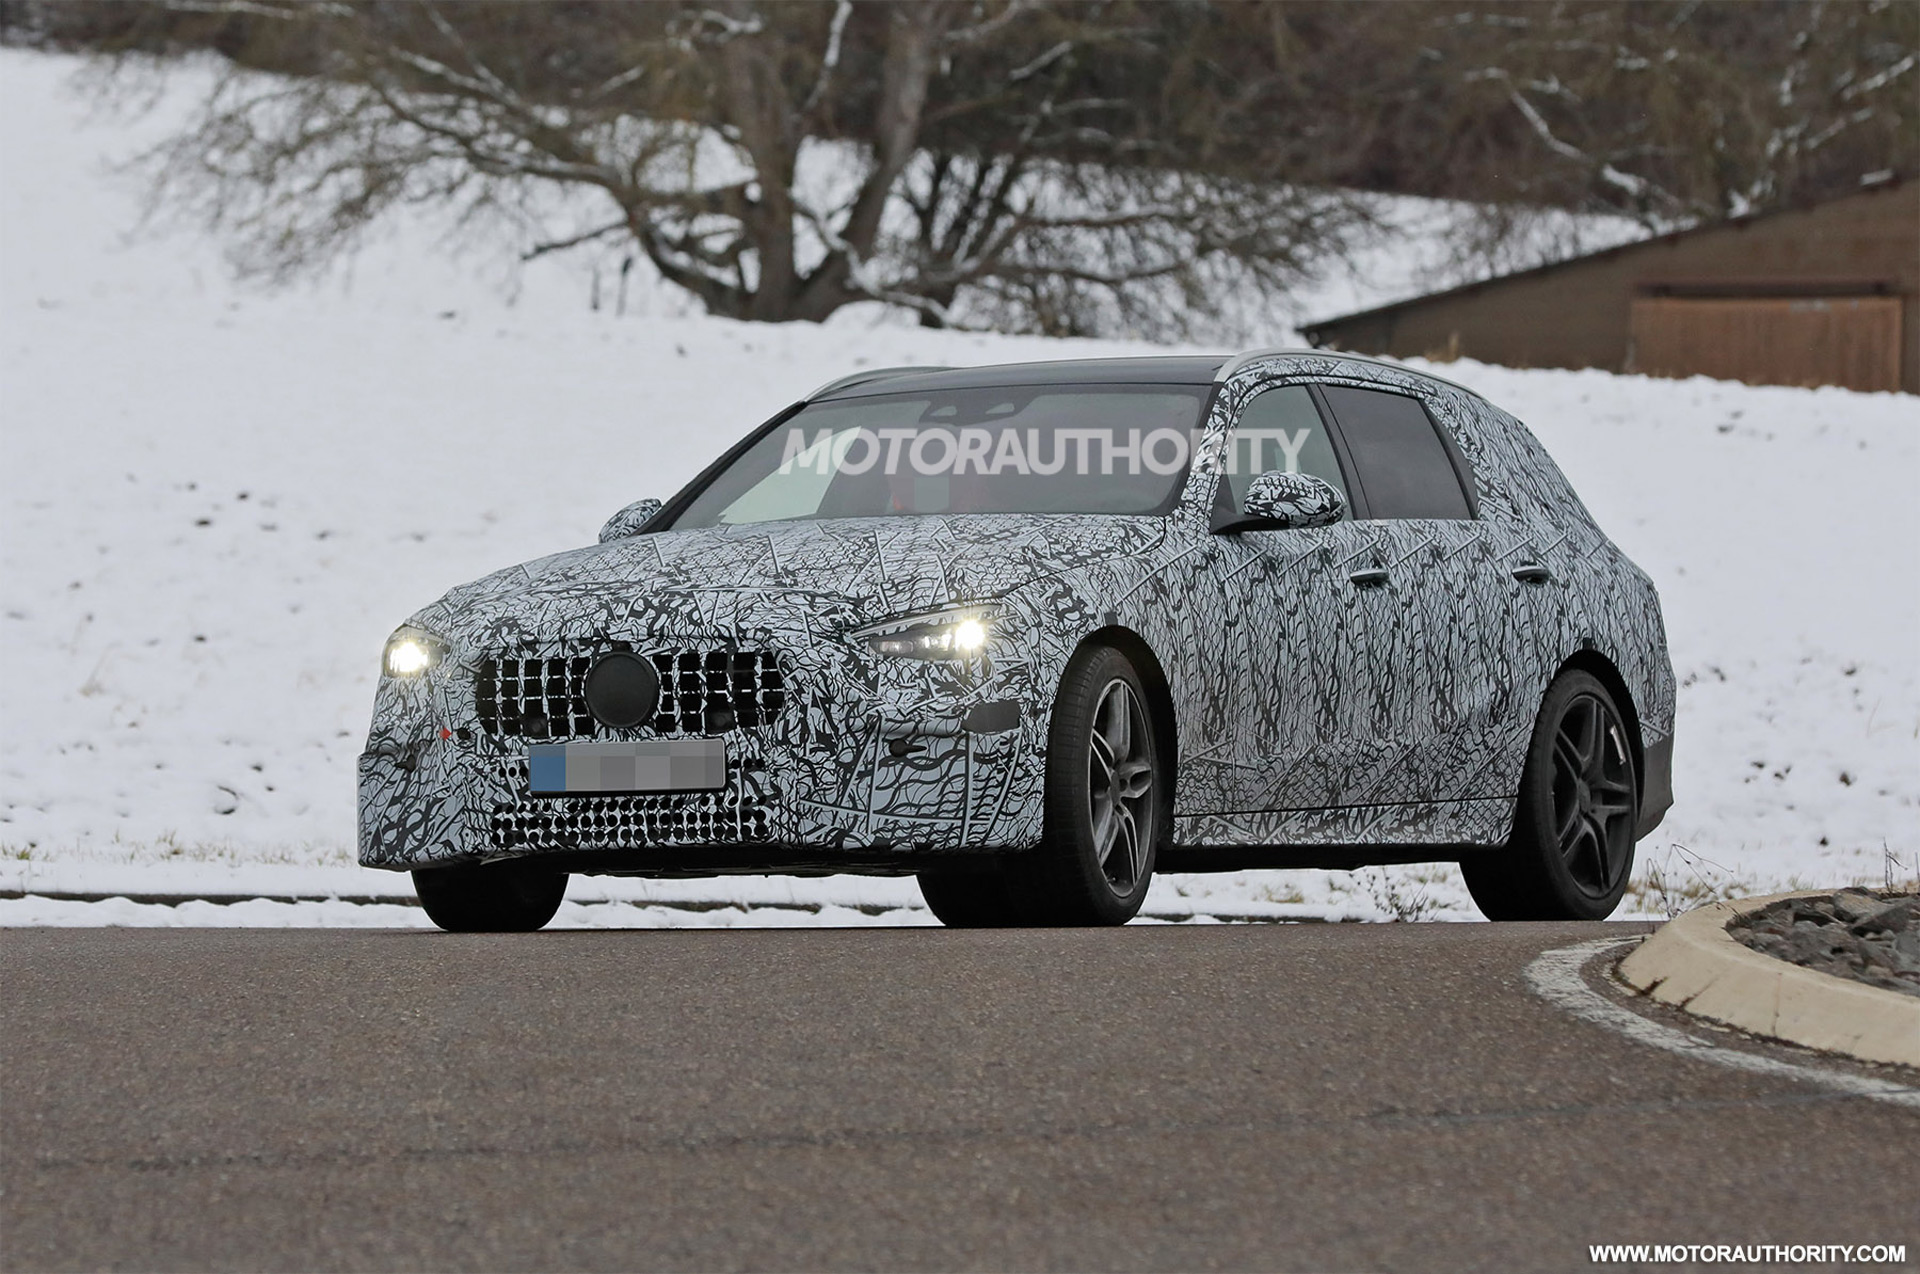 2022 Mercedes-Benz AMG C53 Wagon spy shots: Sporty wagon coming but not to US